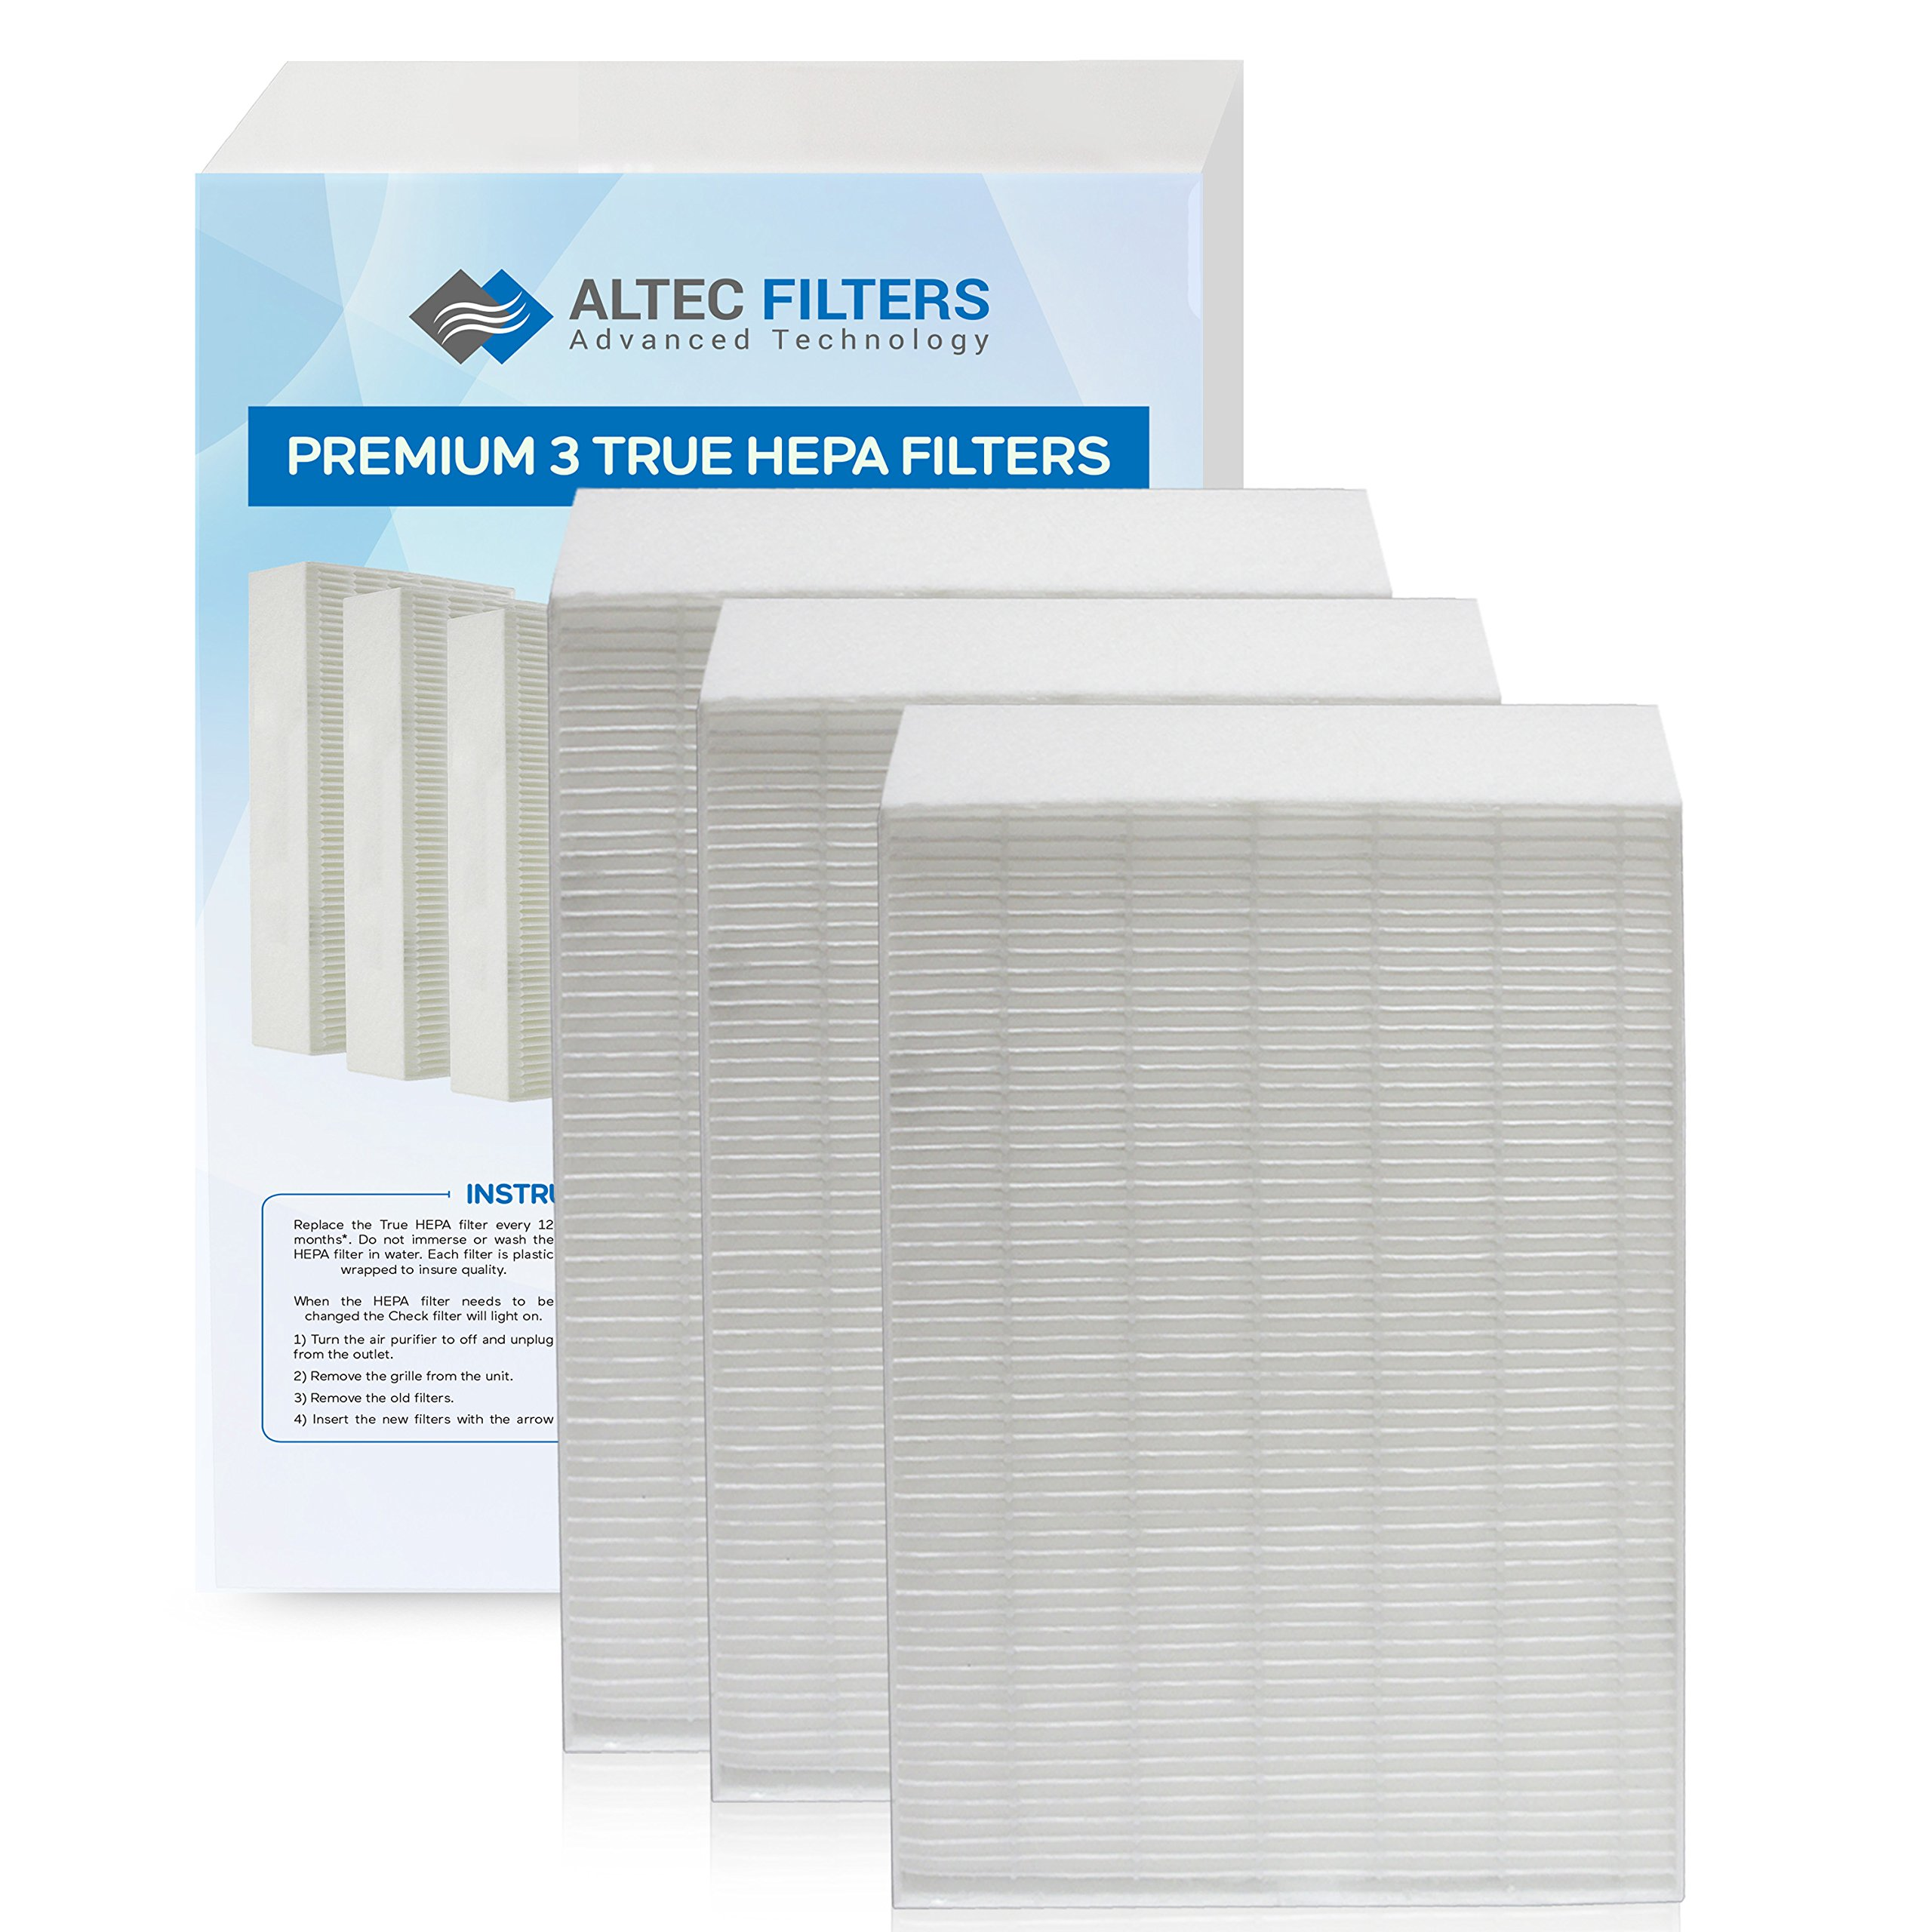 Altec Filters True HEPA Premium Quality Replacement Filters for Honeywell HPA300 Air Purifier, 3 Pack Fits Honeywell HPA090, HPA100, HPA200, HPA300 HW HRF-R3 Filter R (HRF-R3 3 Pack)